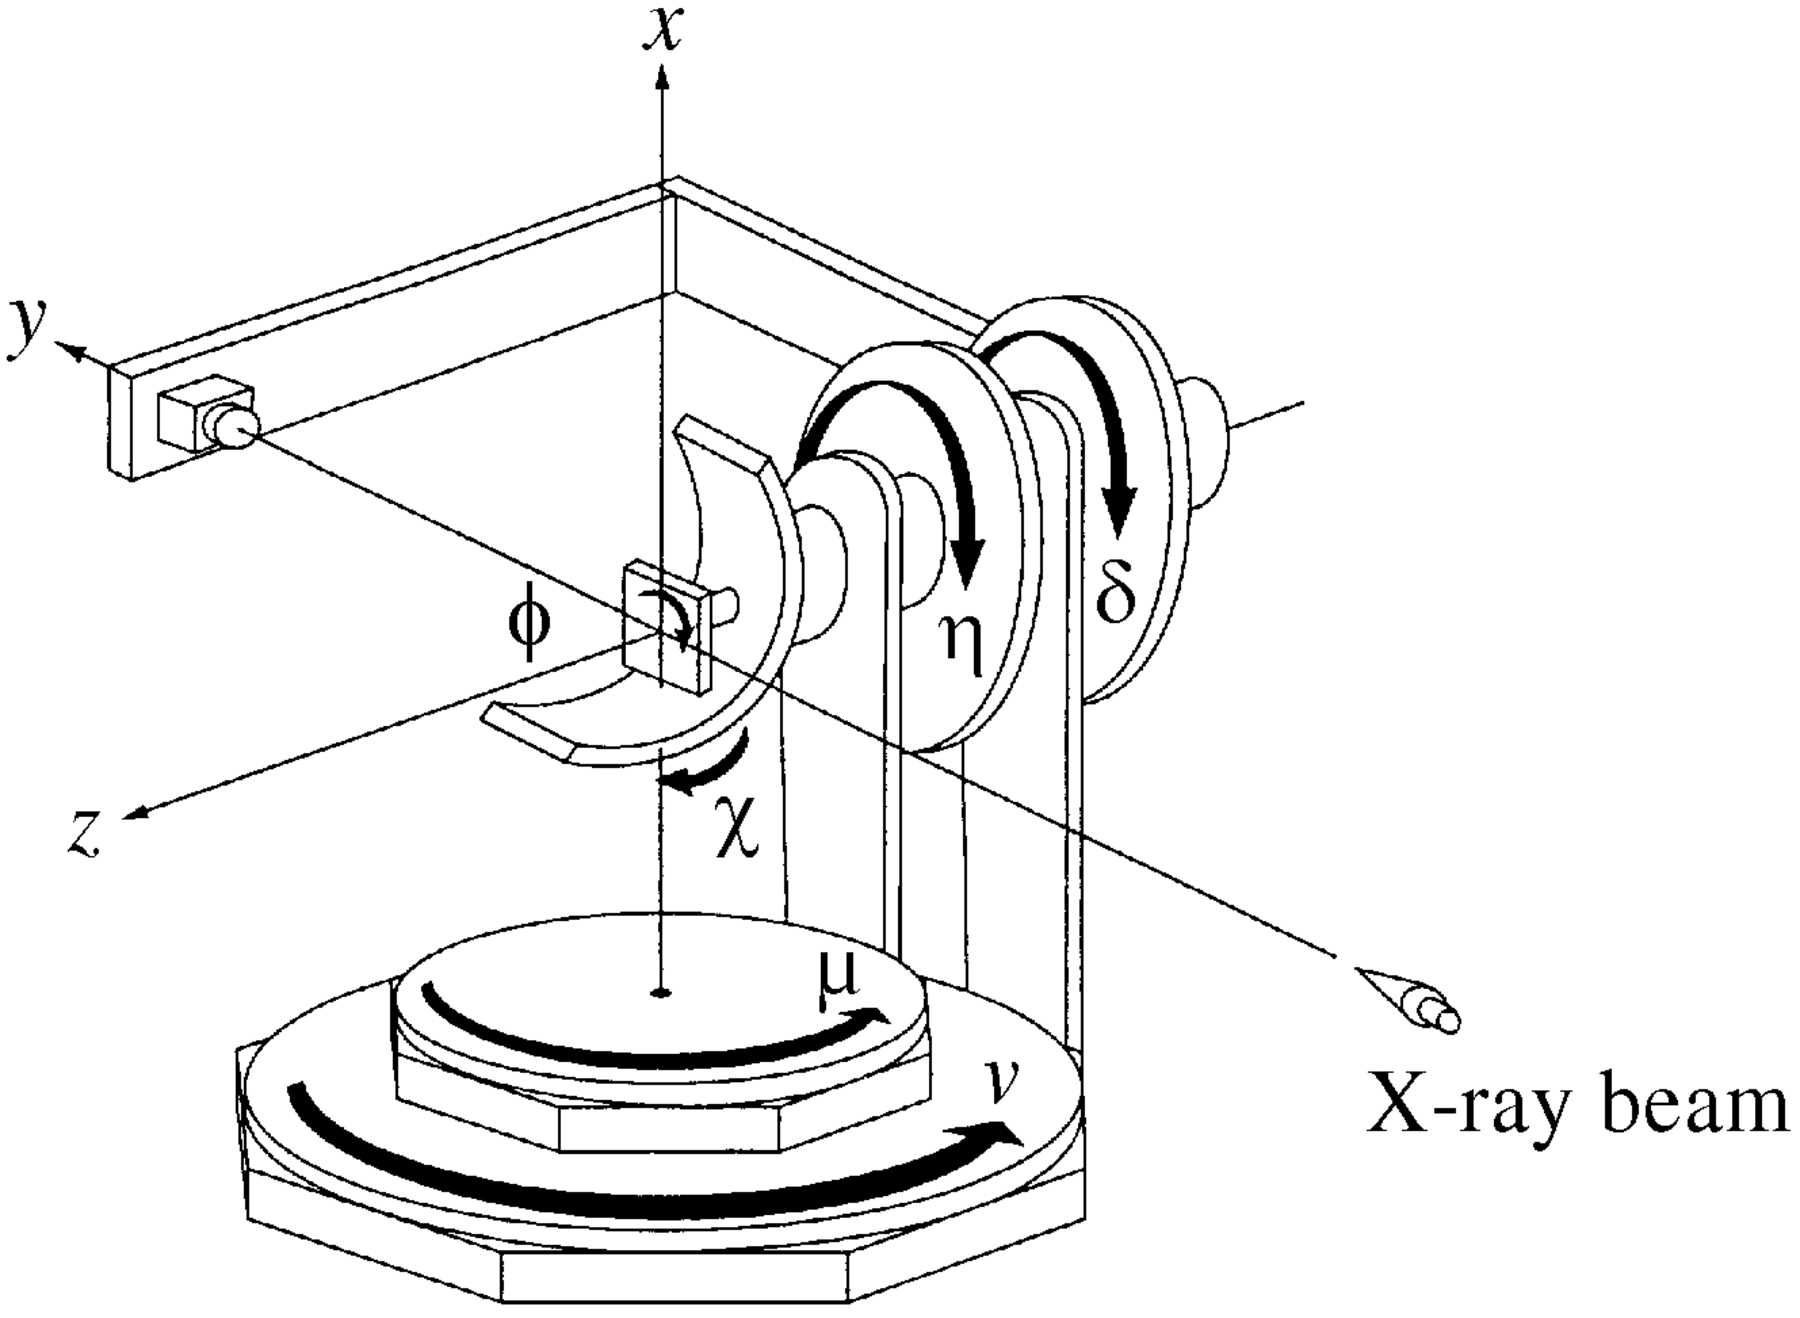 Iucr Angle Calculations For A 4s 2d Six Circle Diffractometer